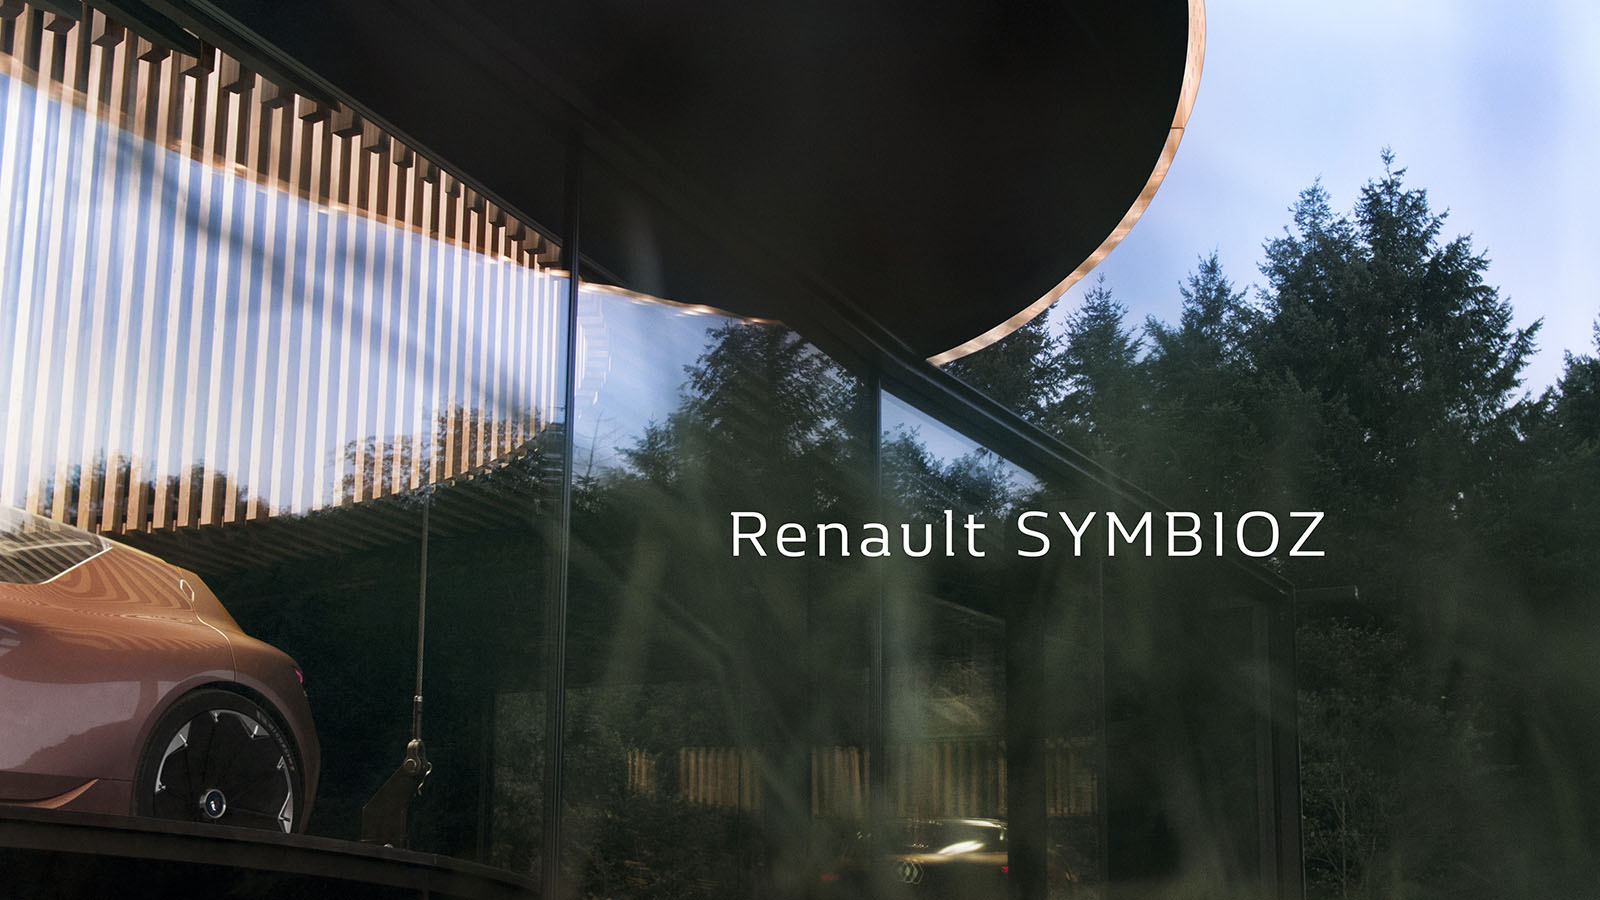 Renault teases self-driving Symbioz coupe concept